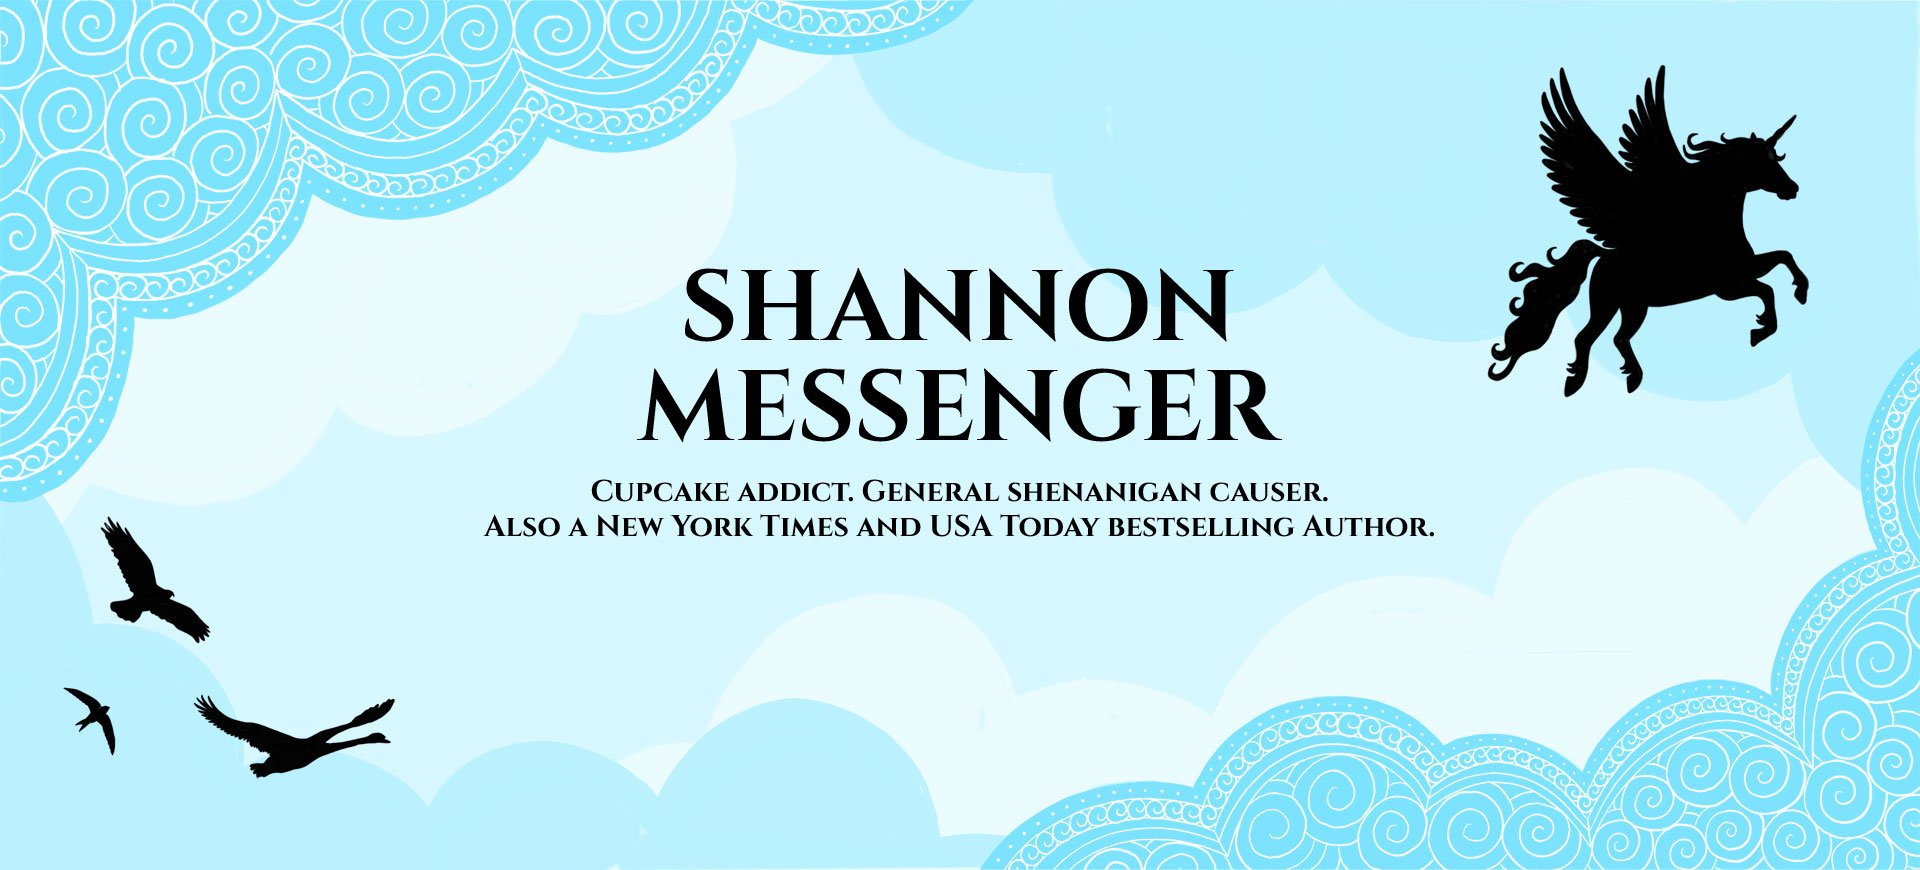 Shannon Messenger New York Times And Usa Today Bestselling Author